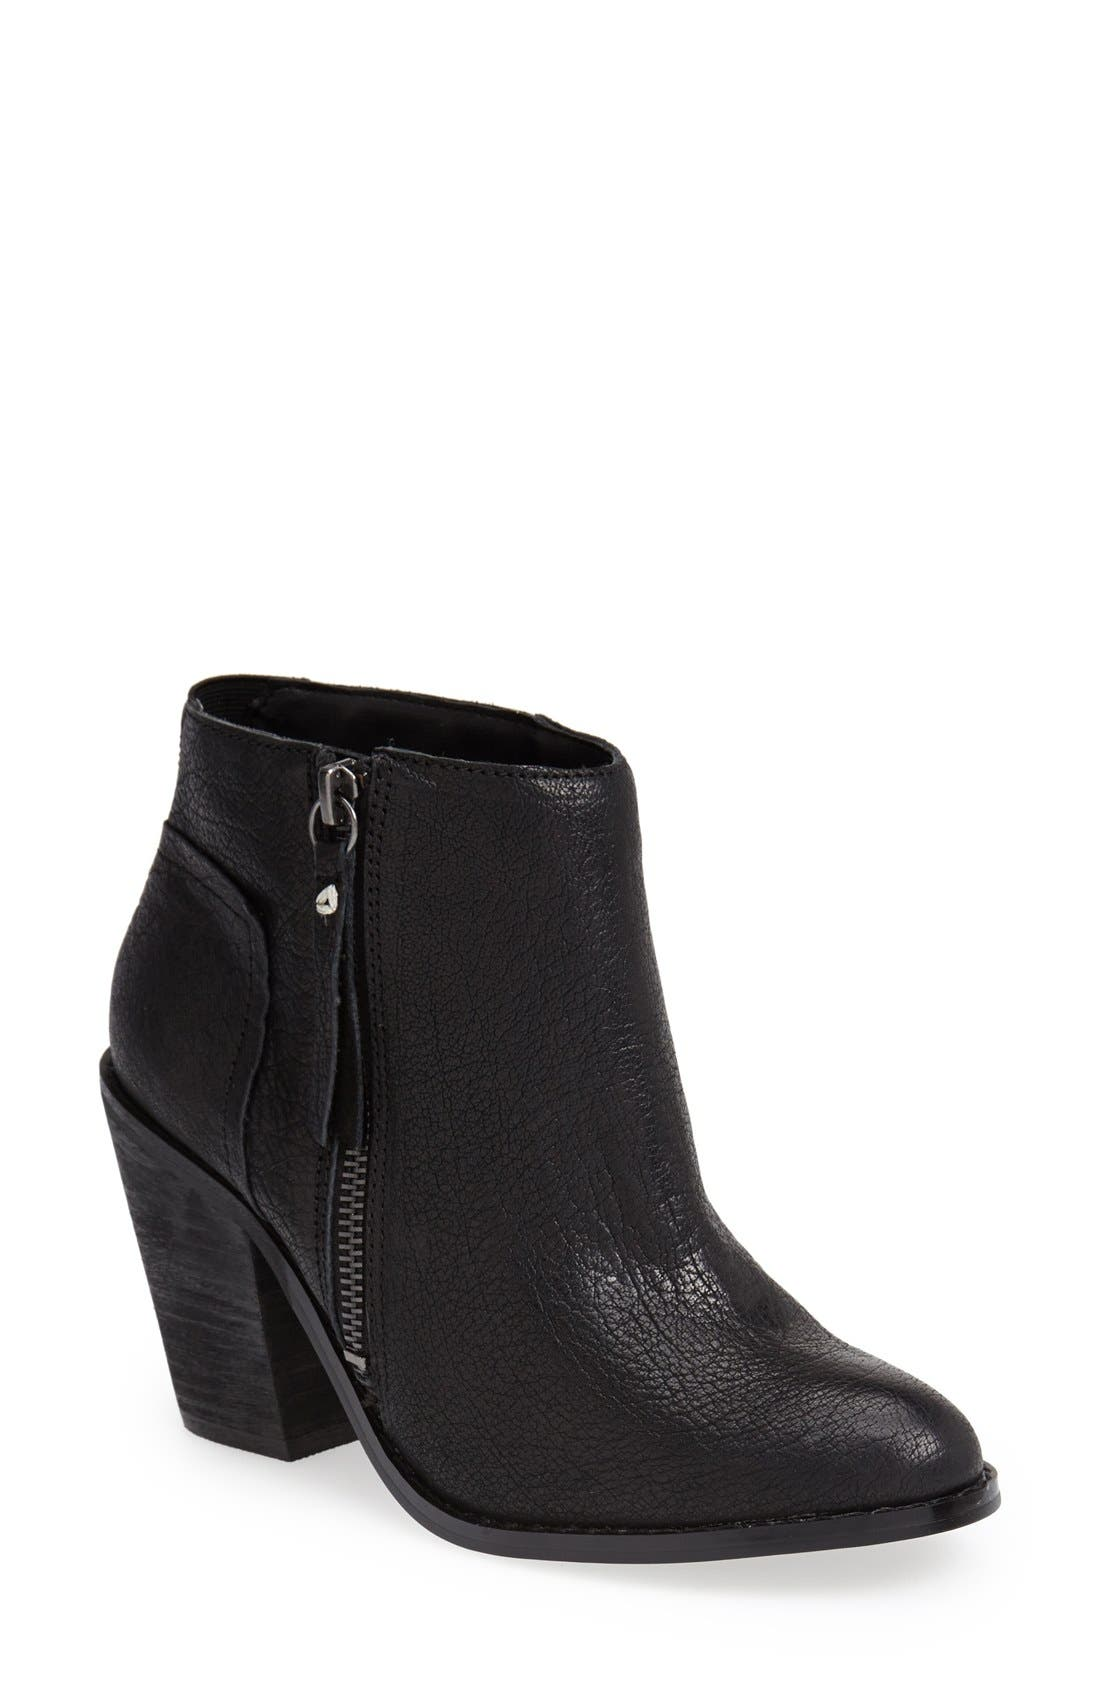 'Jupiter' Bootie,                         Main,                         color, Black